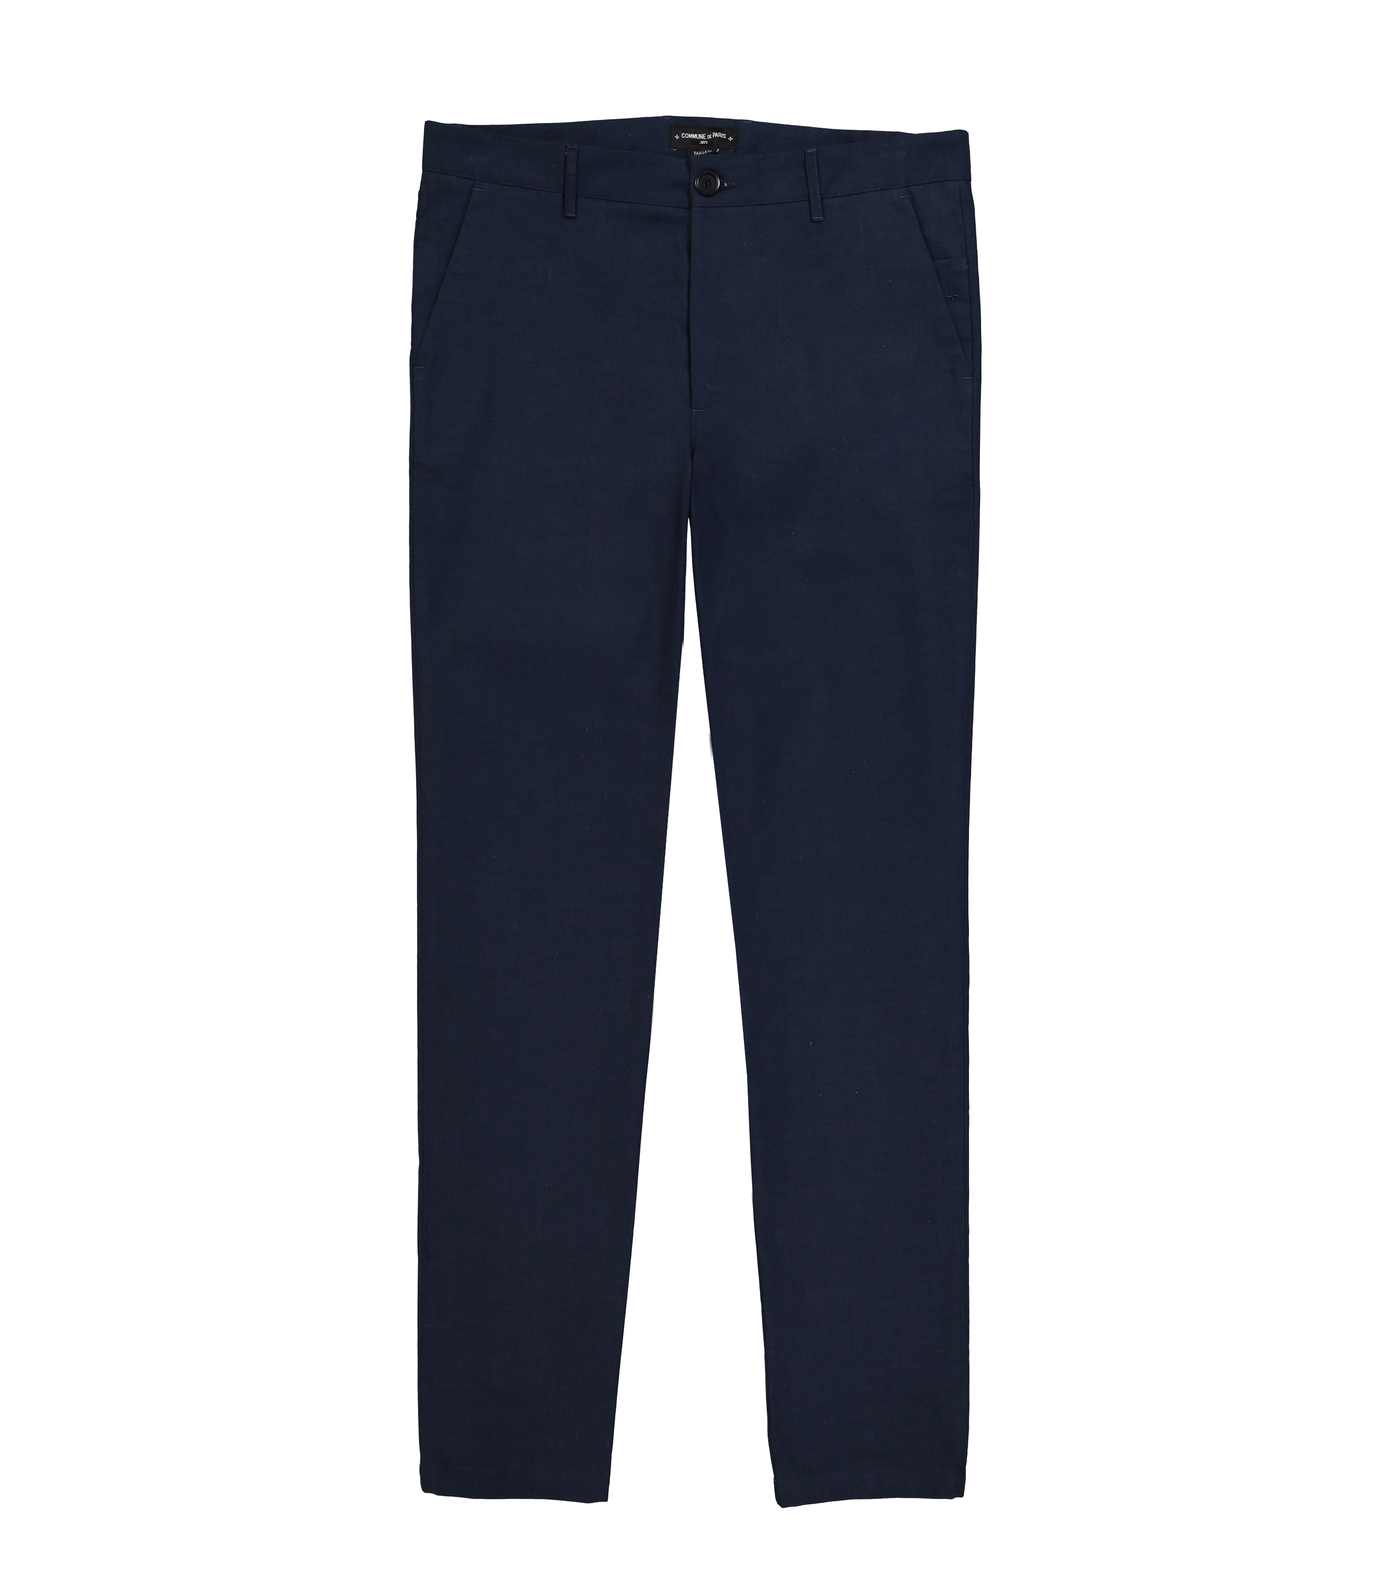 PANTALON GN6 - Navy